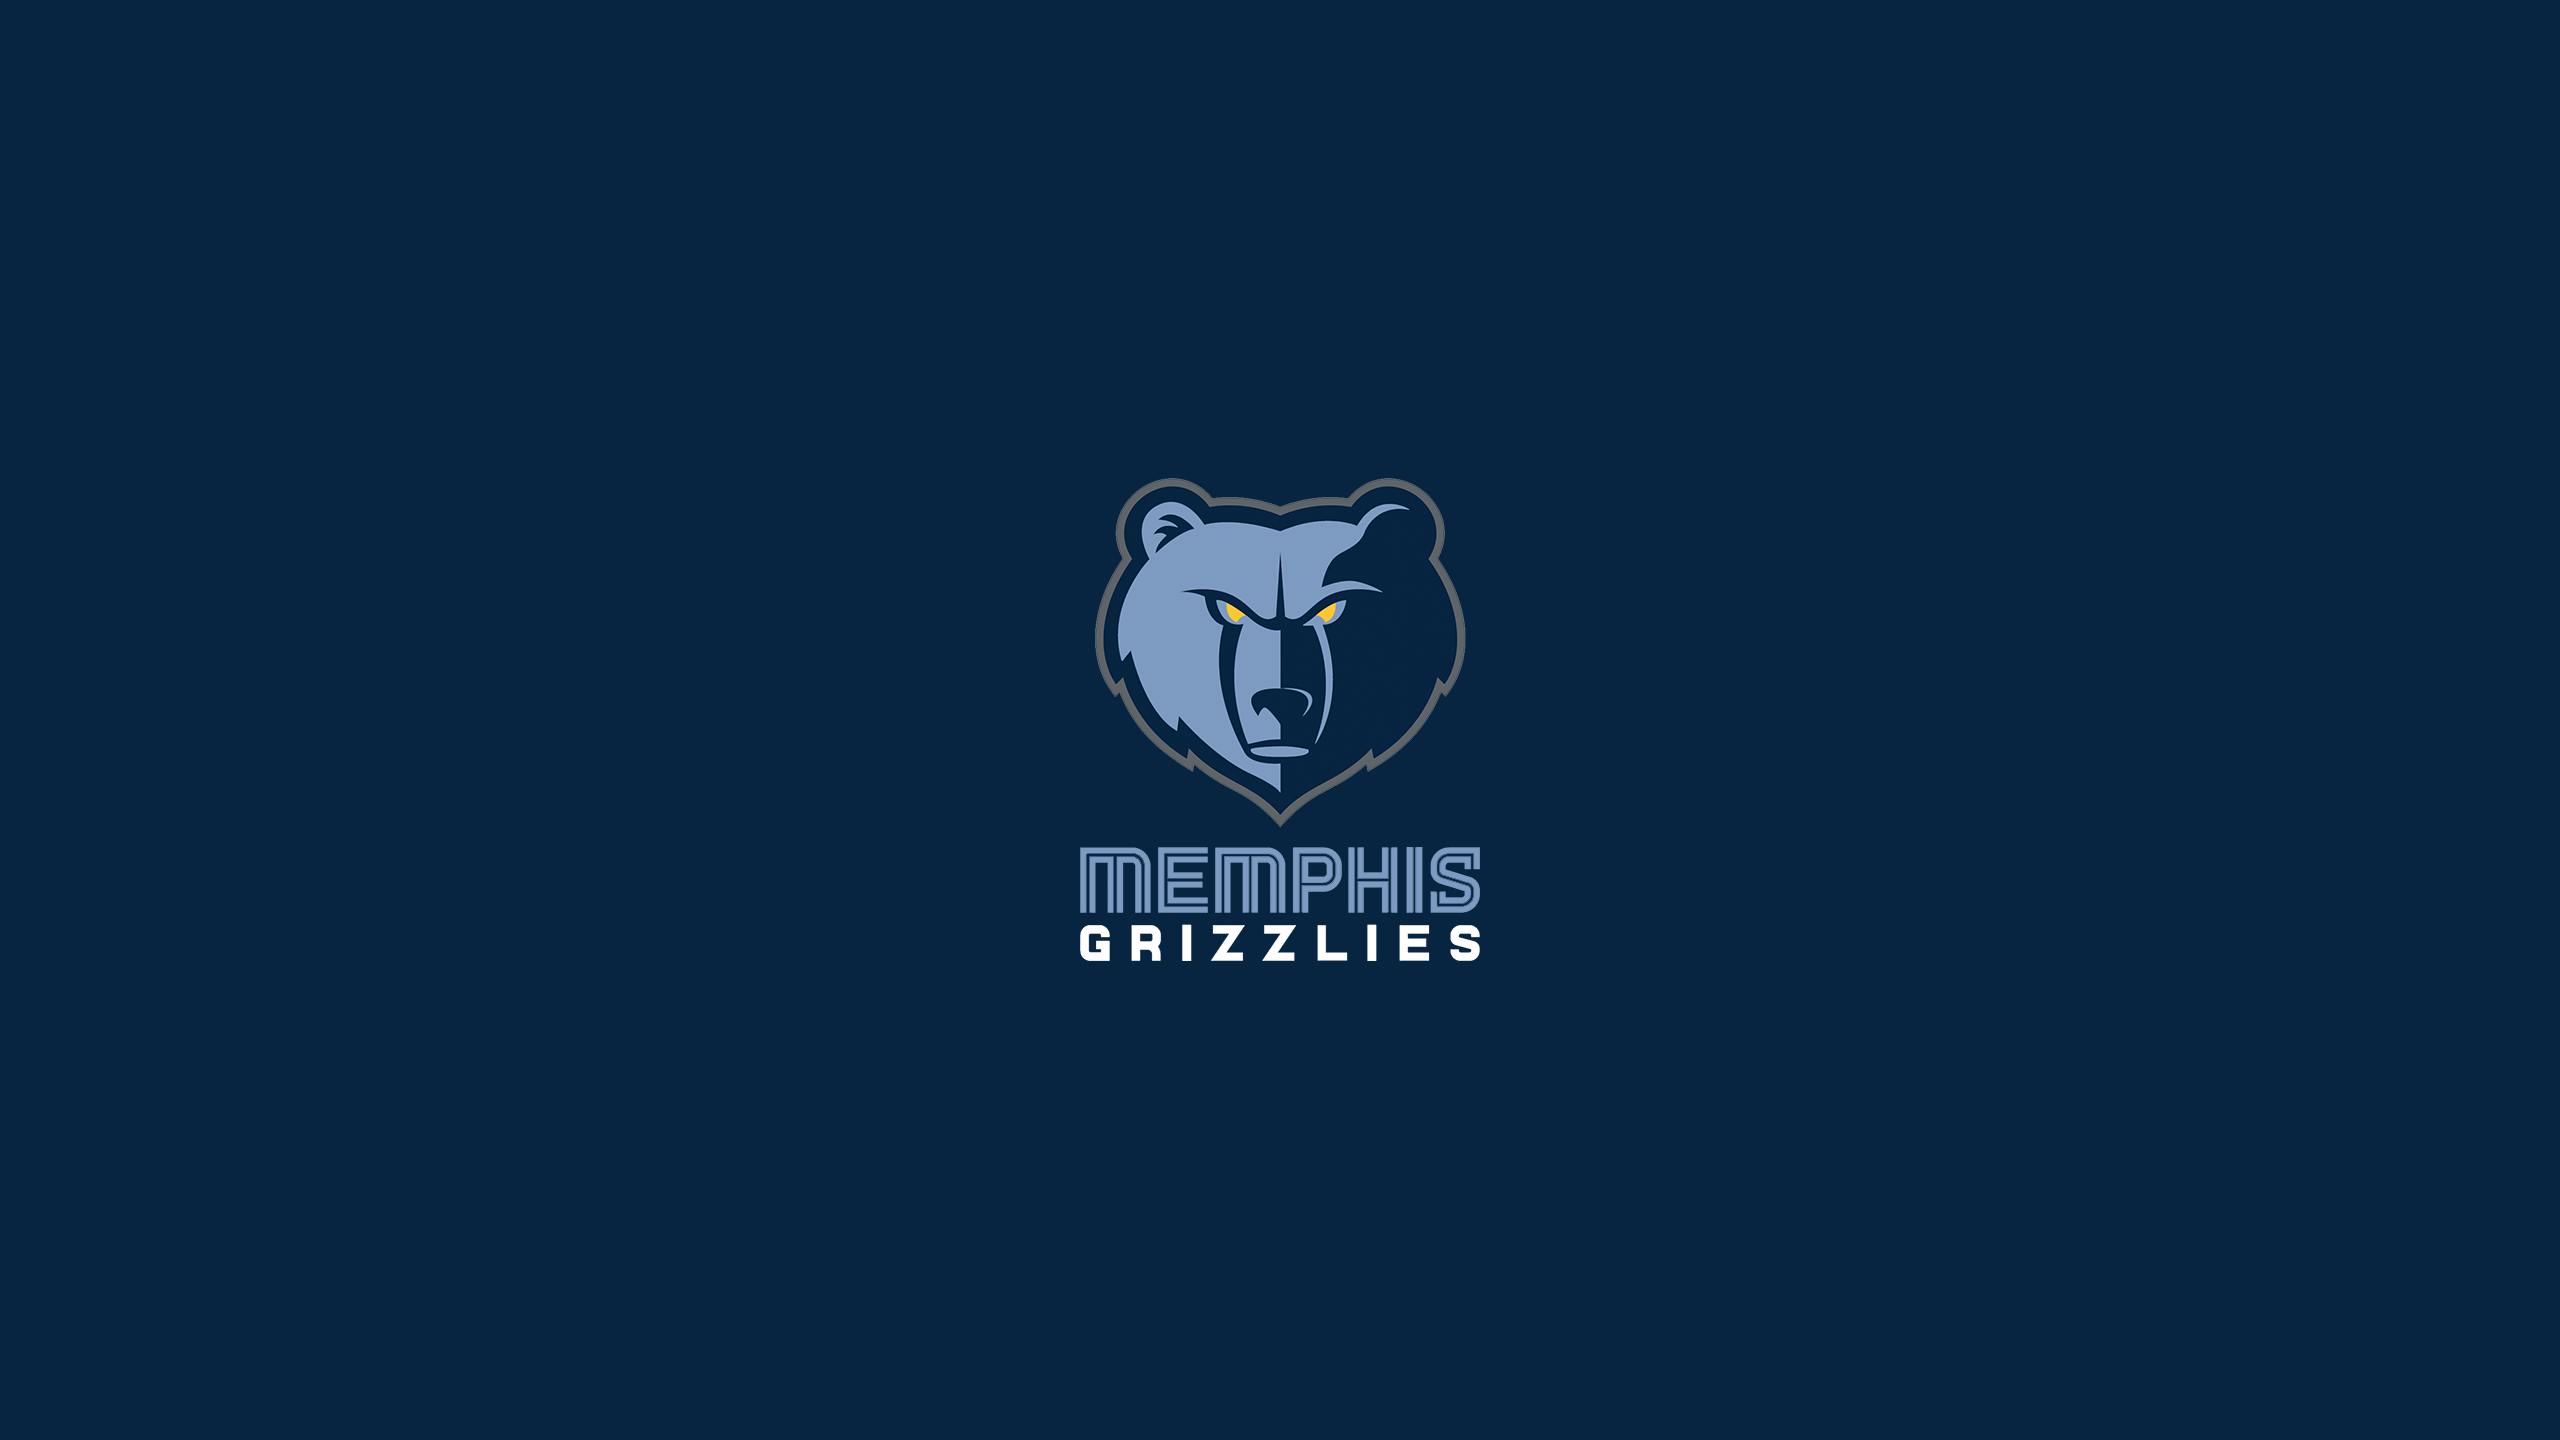 Memphis Grizzlies (Away)